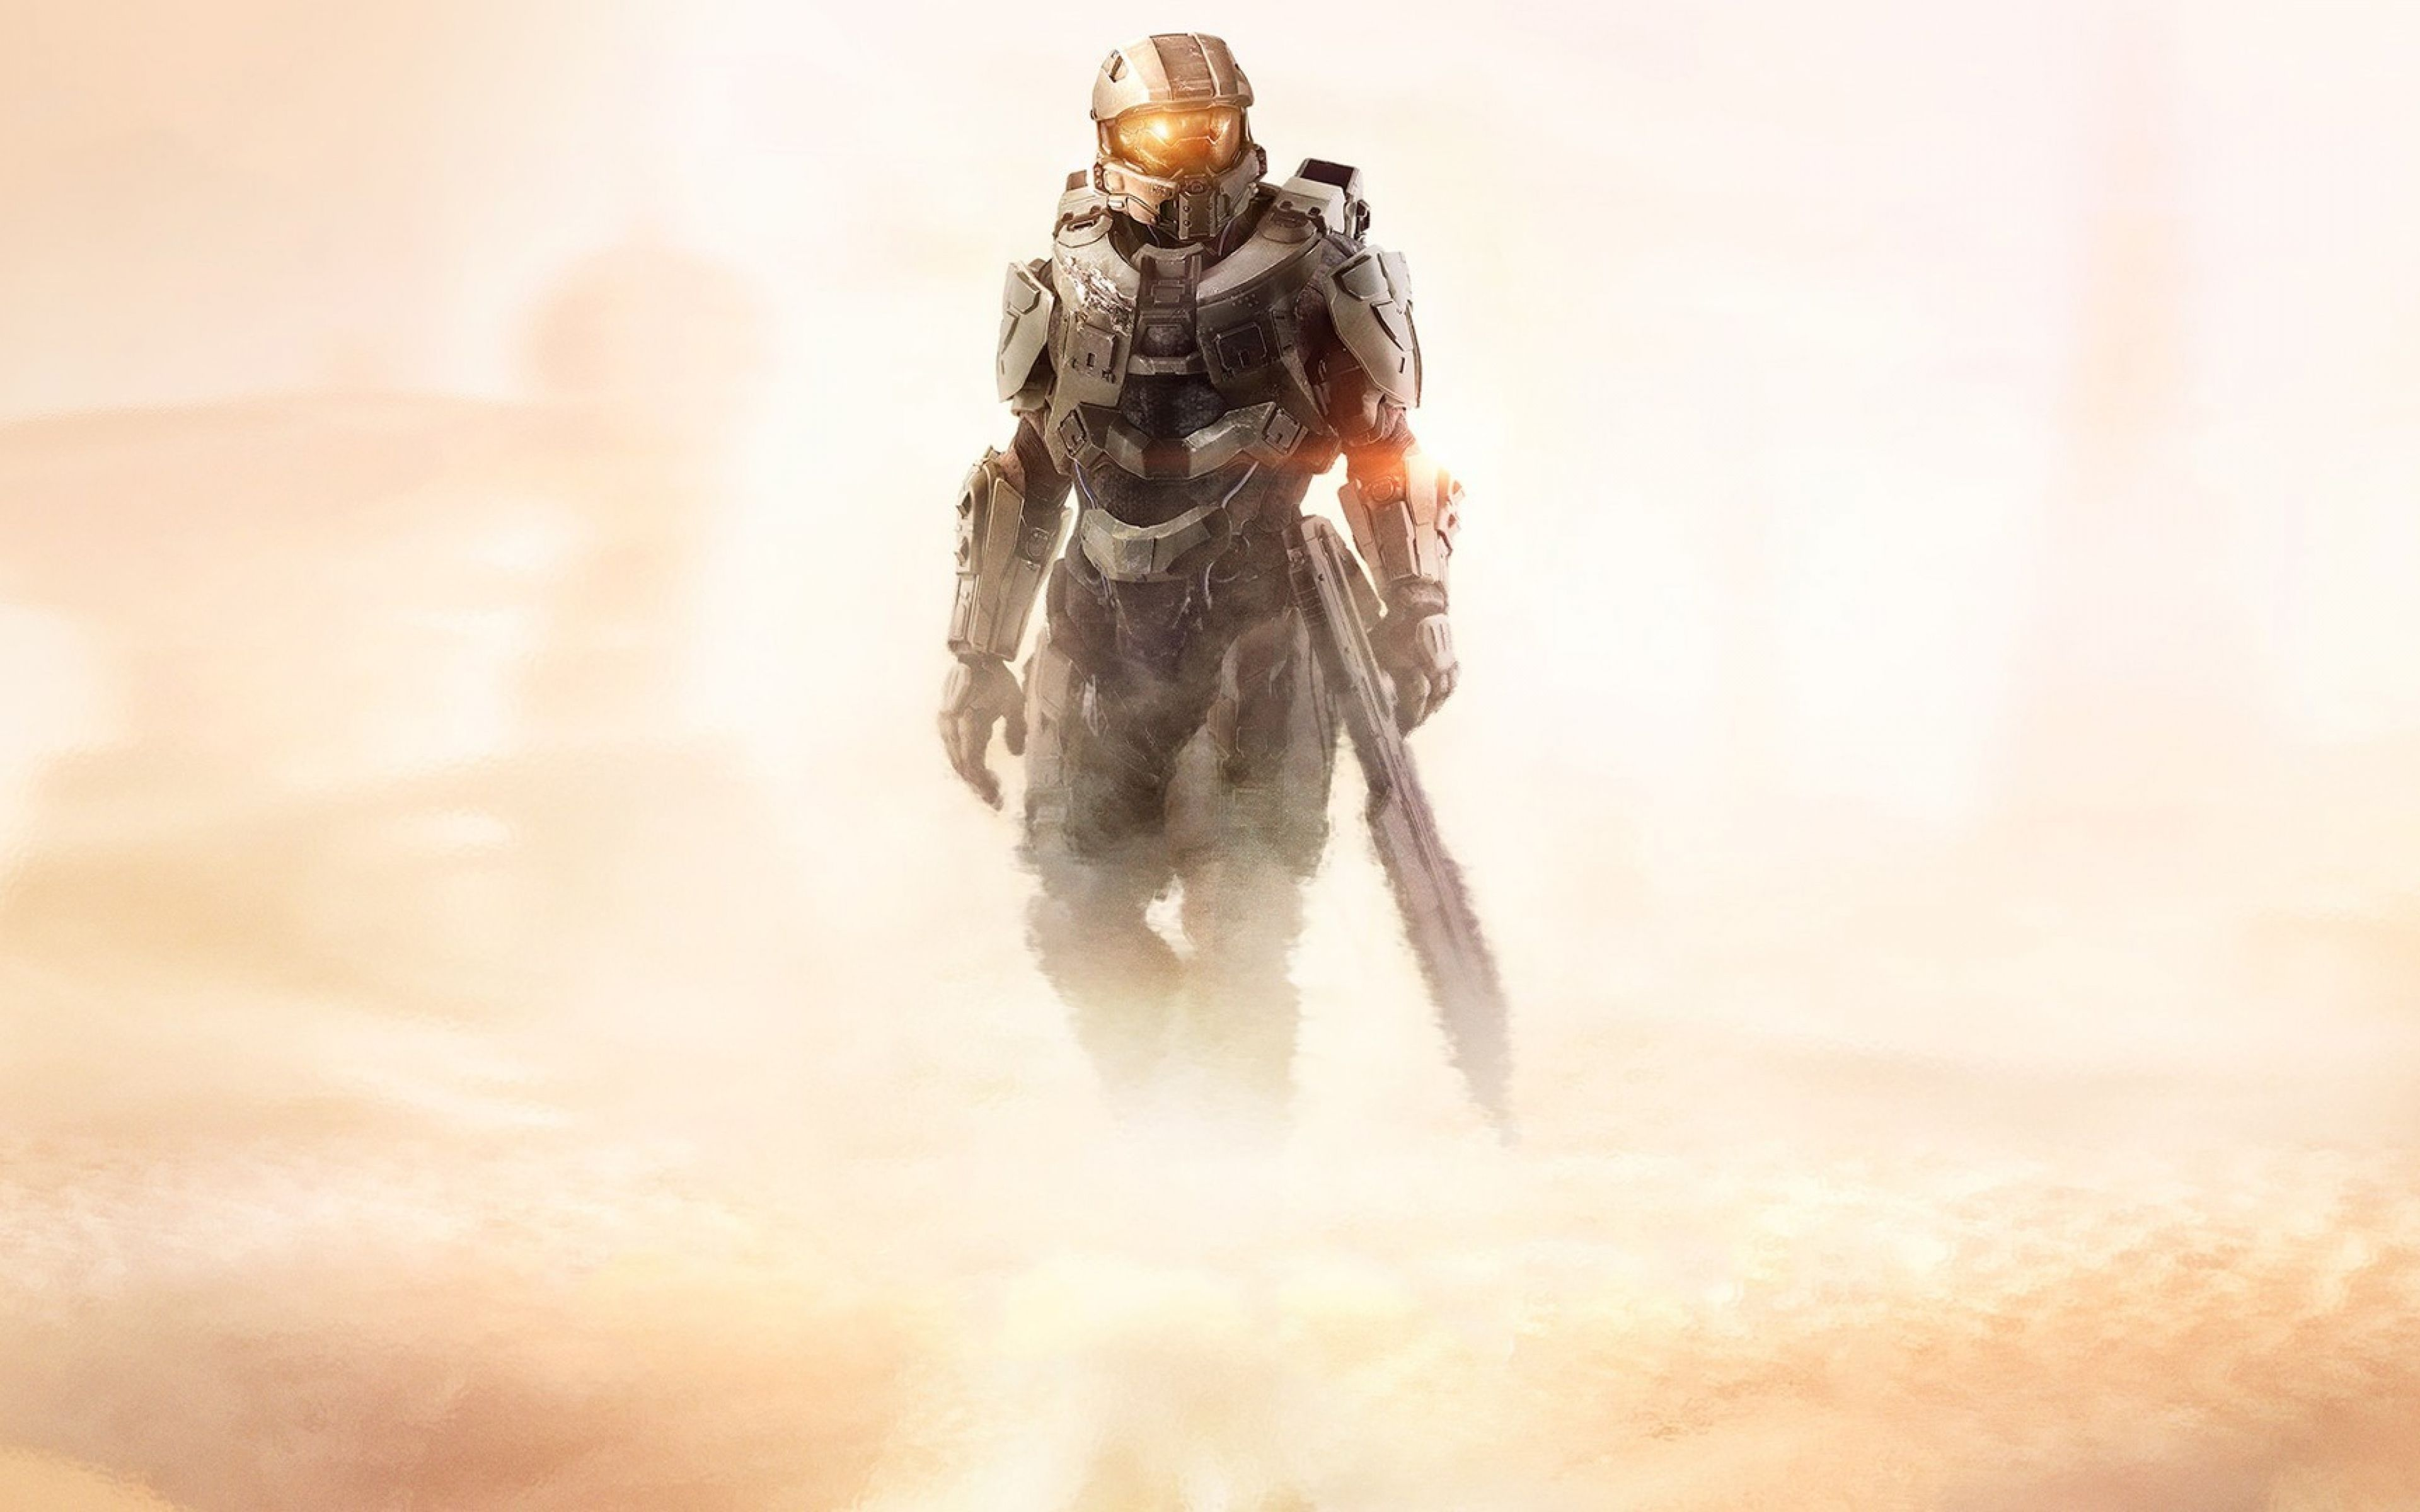 Halo master chief wallpaper hd wallpapers pinterest hd halo master chief wallpaper voltagebd Image collections